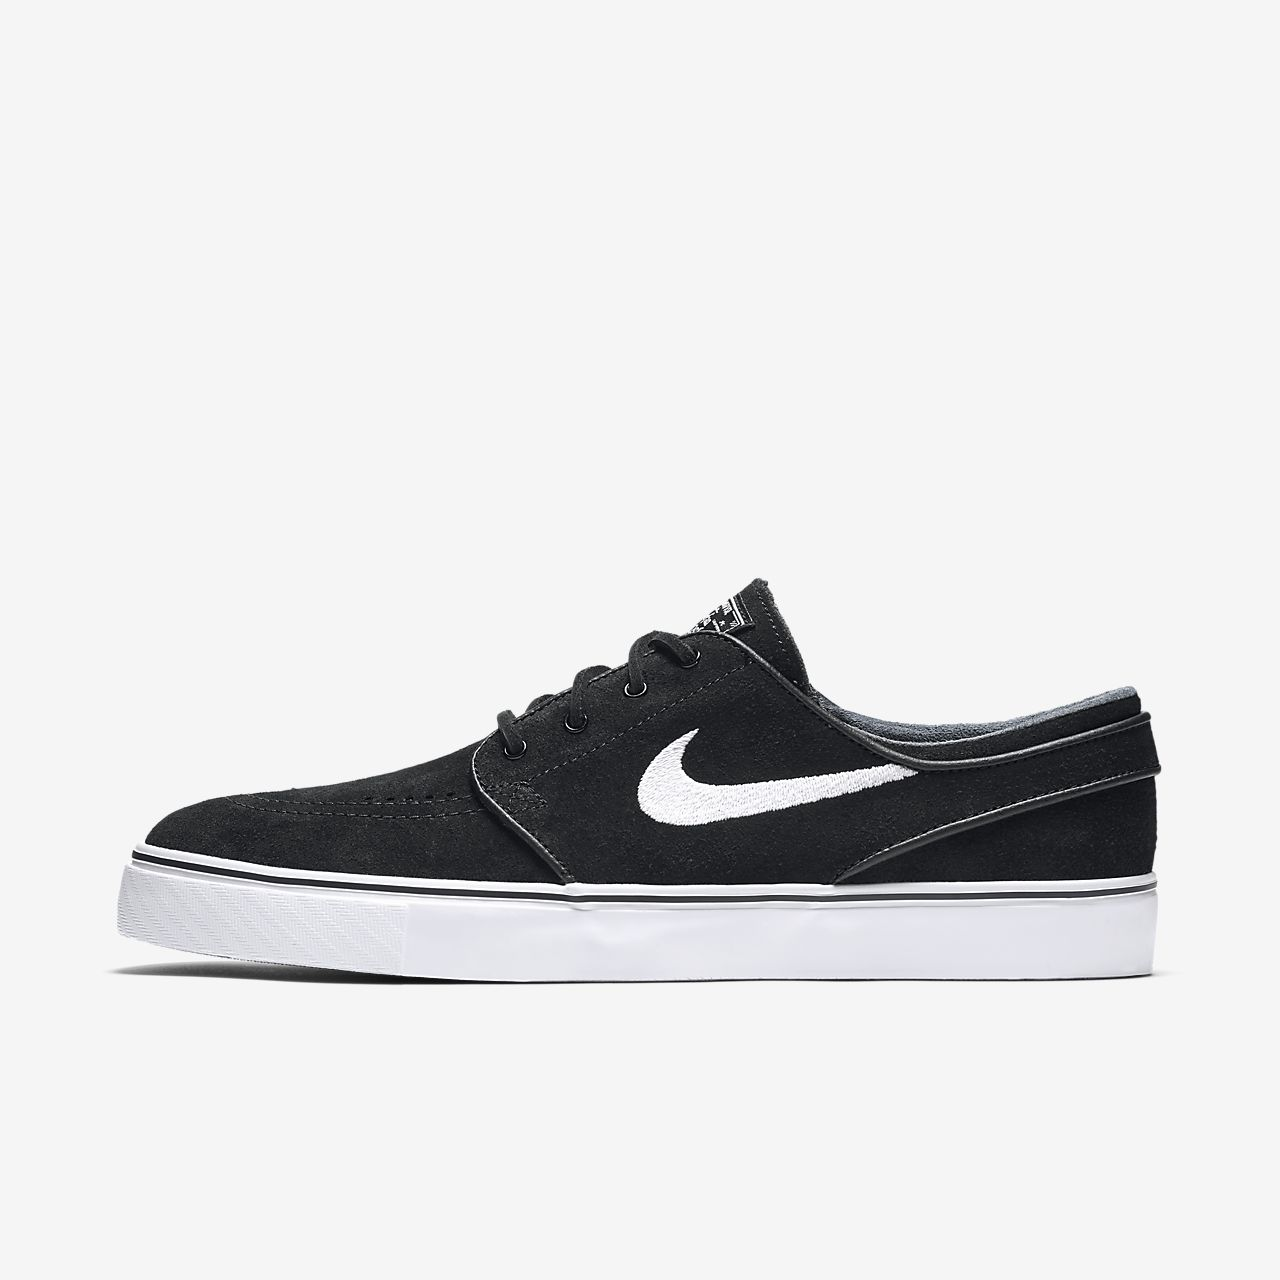 nike shoes janoski zoom 0123movies+ 882327